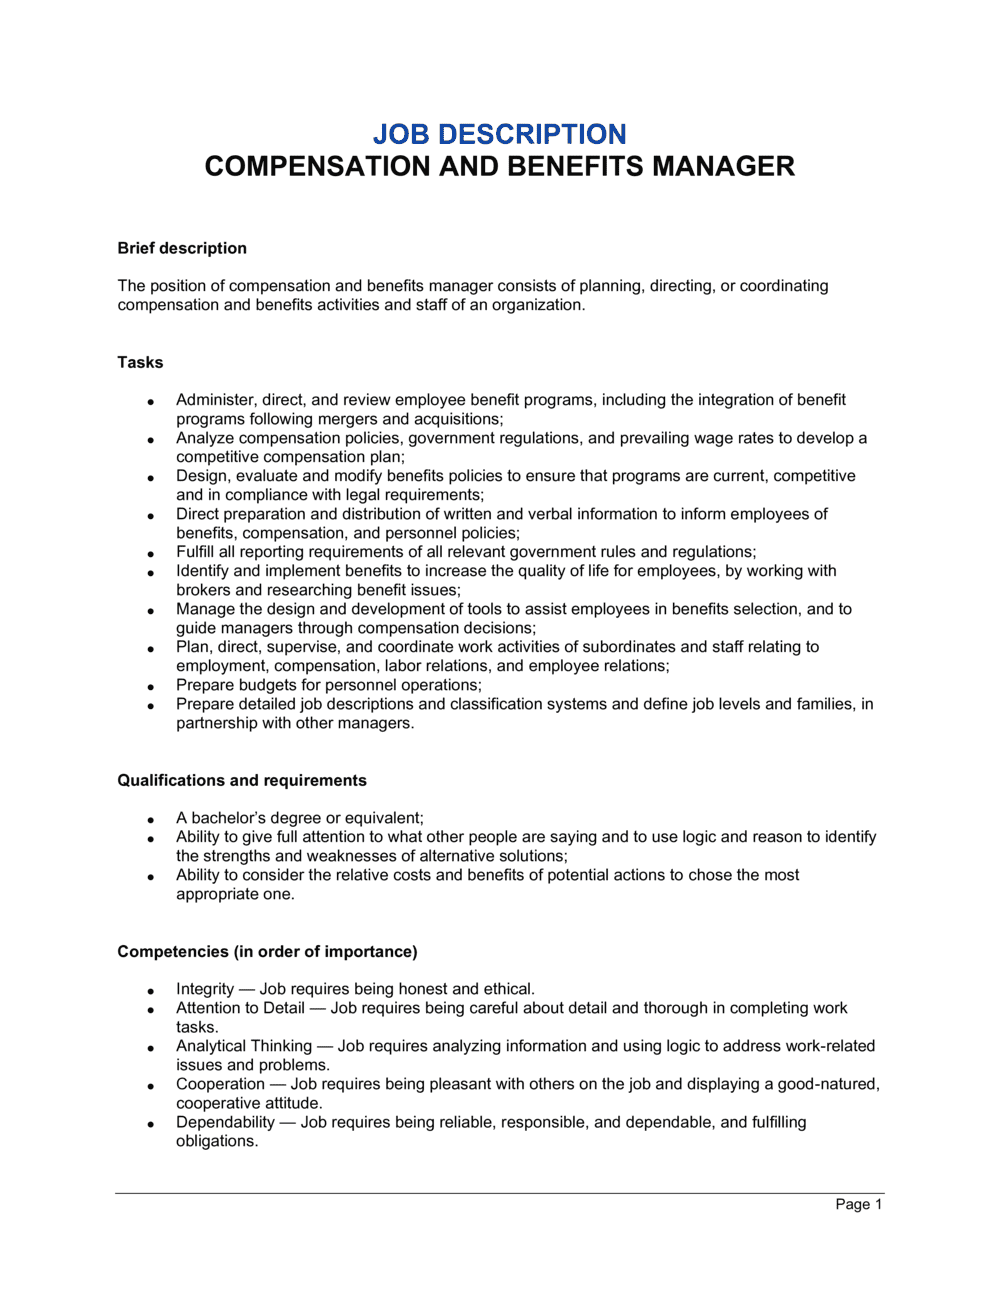 Business-in-a-Box's Compensation and Benefits Manager Job Description Template